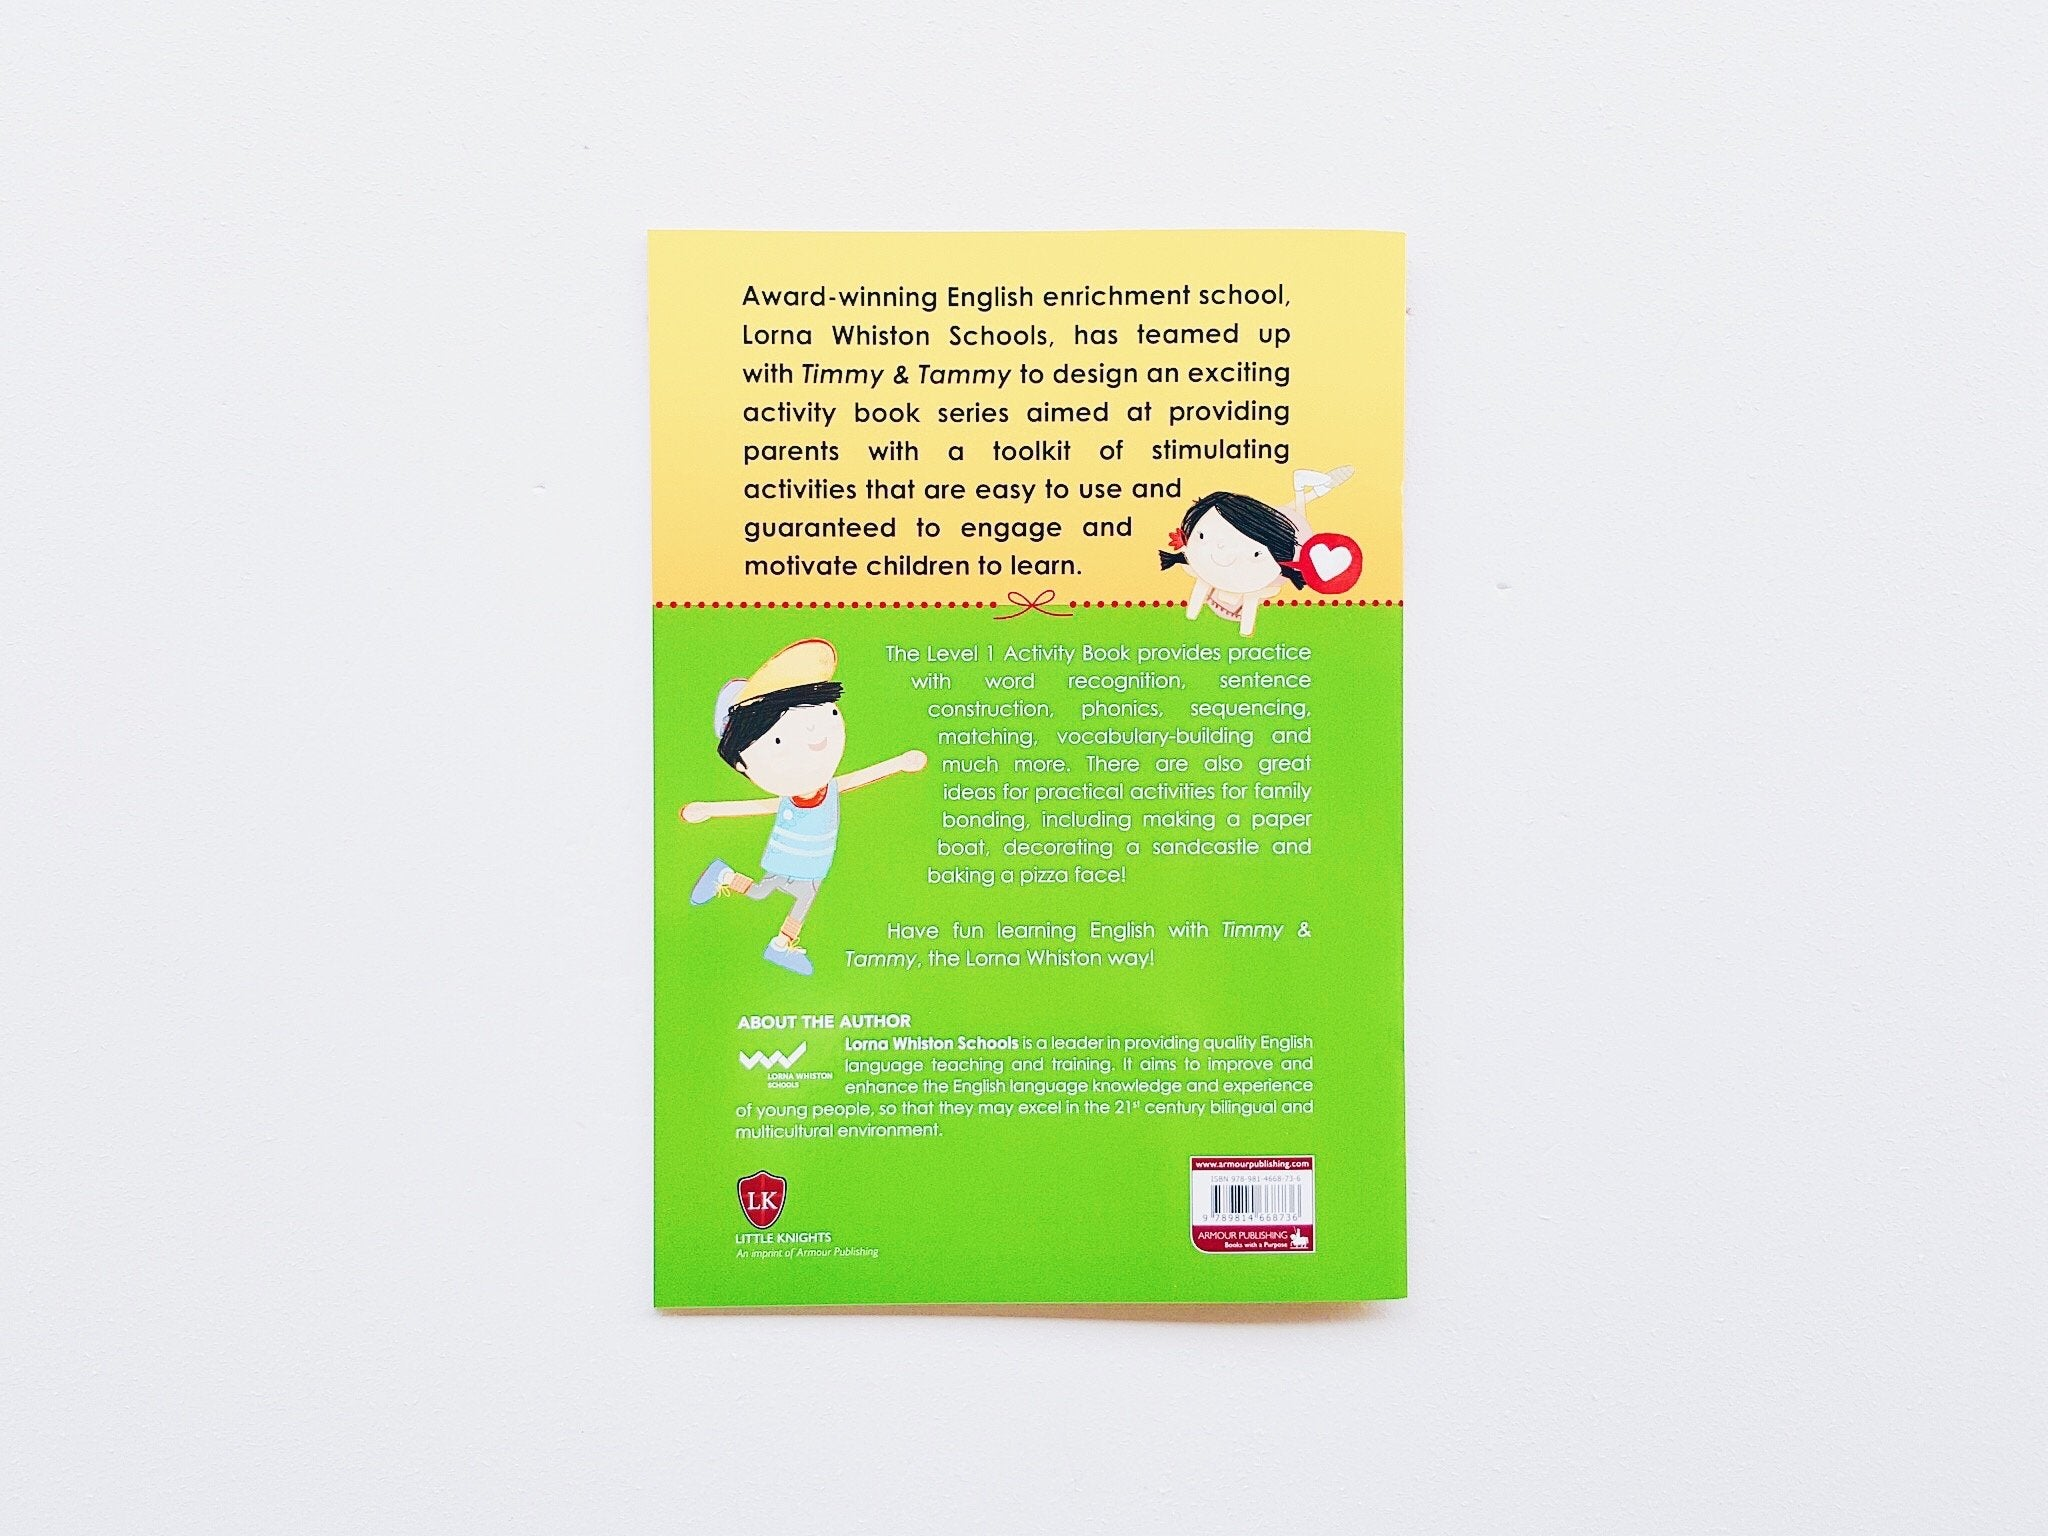 Timmy & Tammy Activity Book (Level 1) by Lorna Whiston Schools